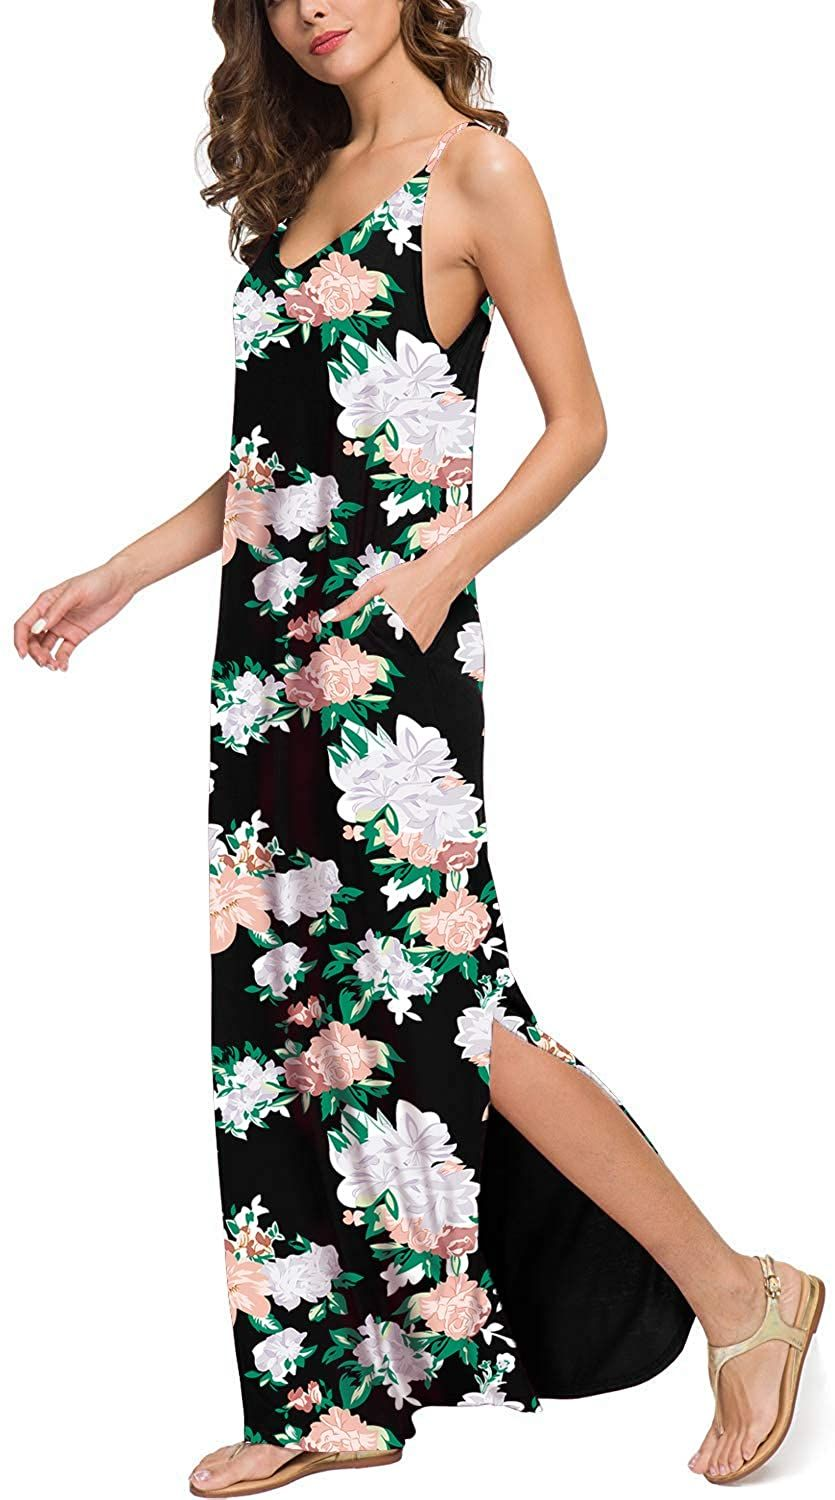 Women S Summer Casual Loose Dress Beach Cover Up Long Cami Maxi Dresses With Pocket Maxi Dress Cami Maxi Dress Loose Dress [ 1500 x 835 Pixel ]